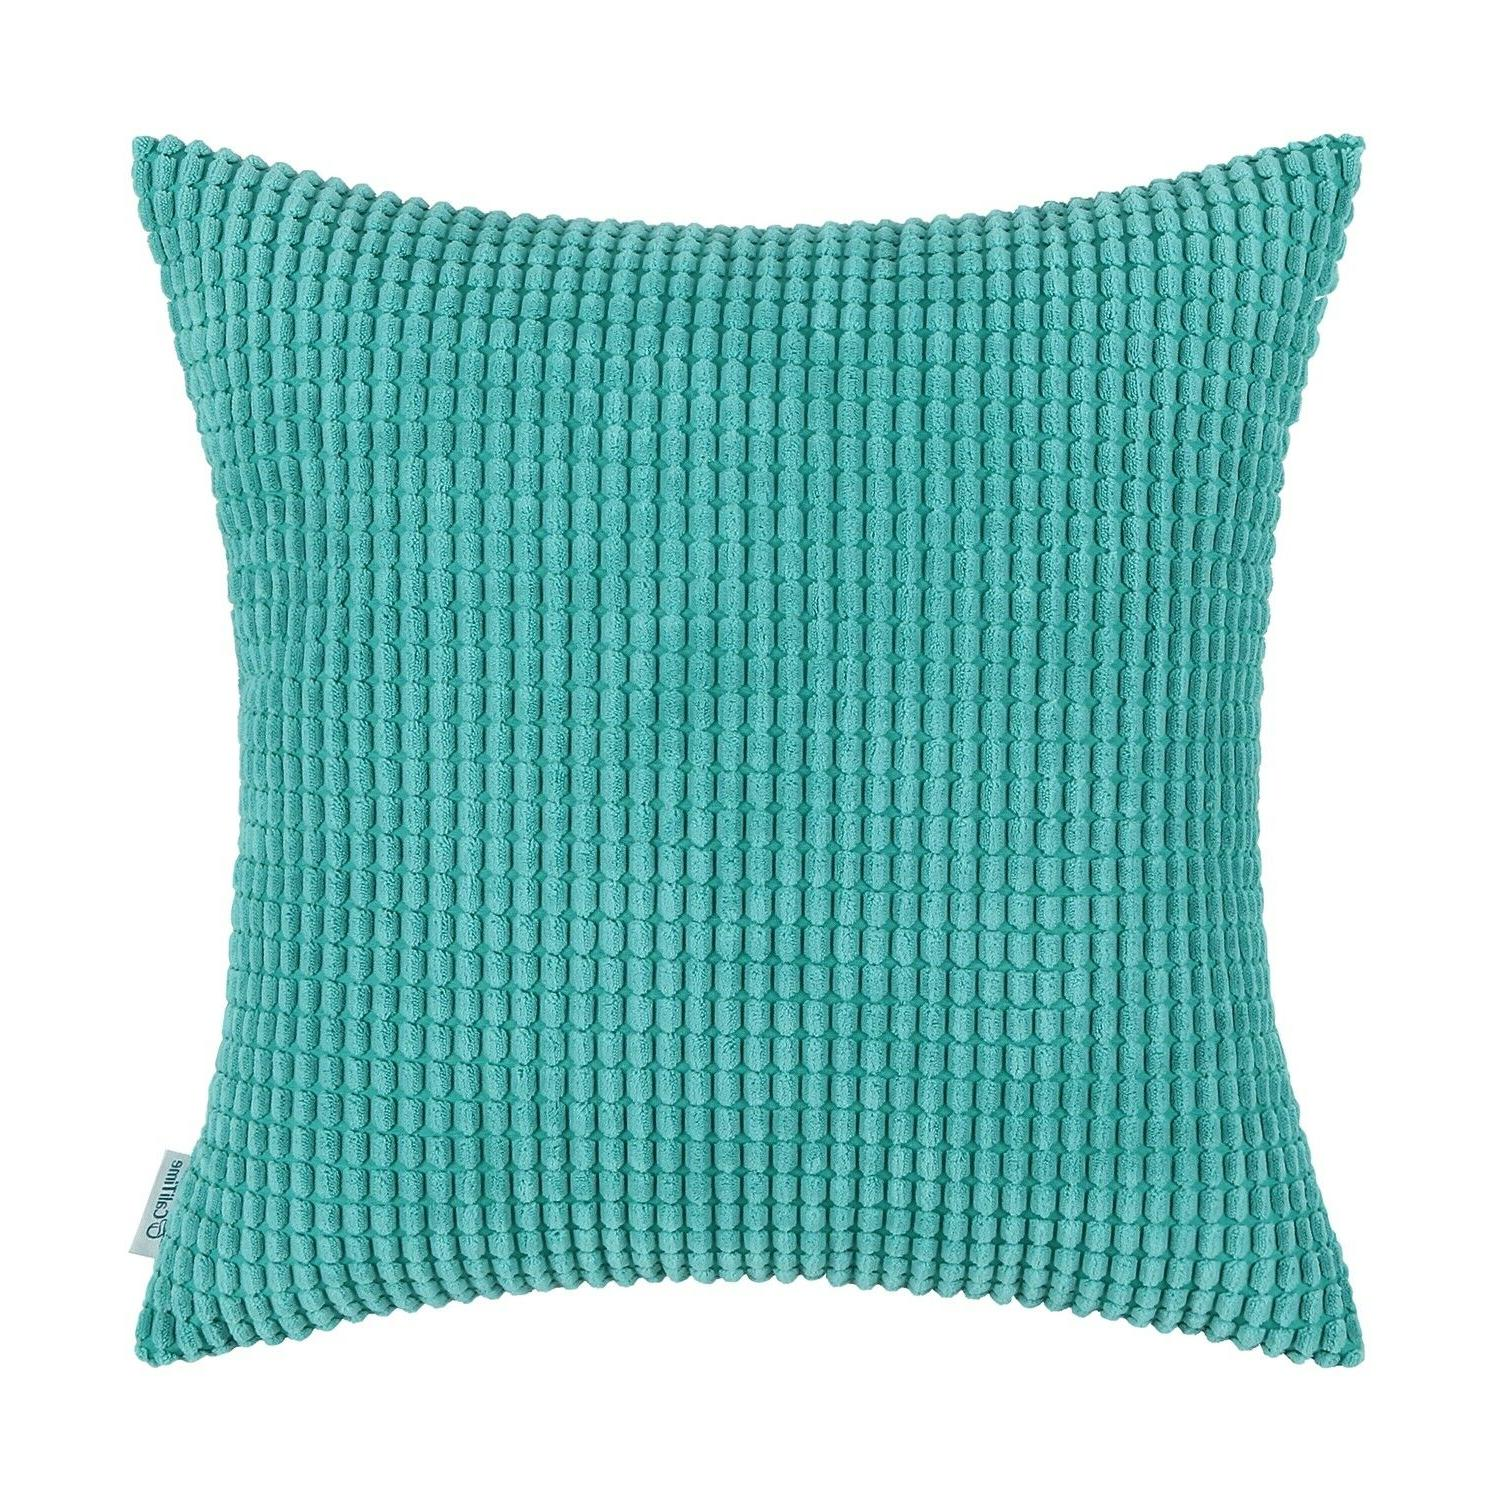 CaliTime Pillows Shells Cushion Covers Solid Soft Corduroy C